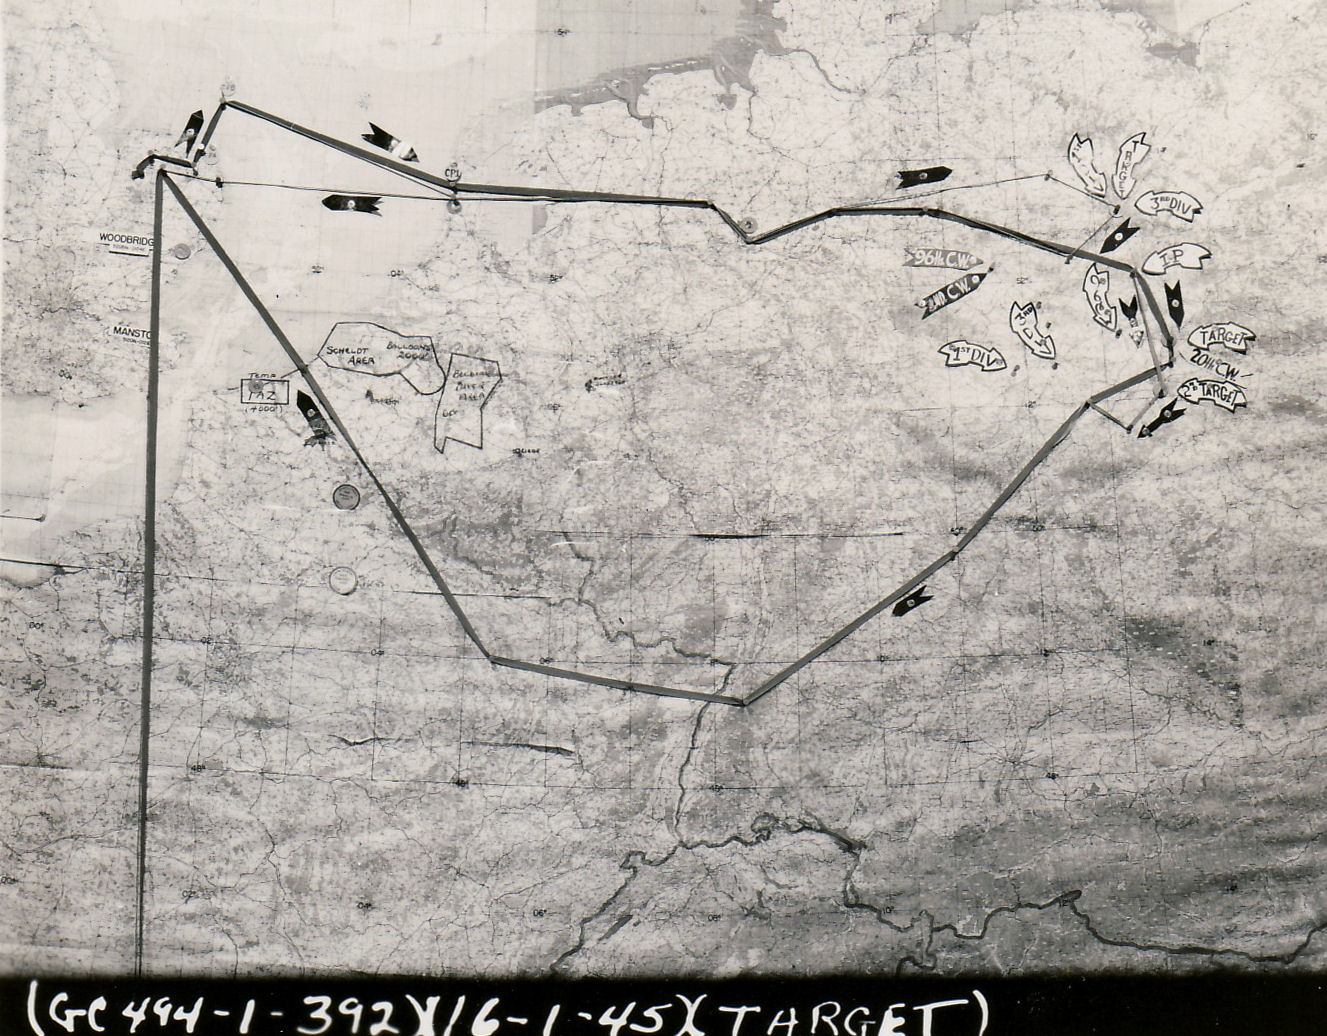 16 Jan 45 mission map